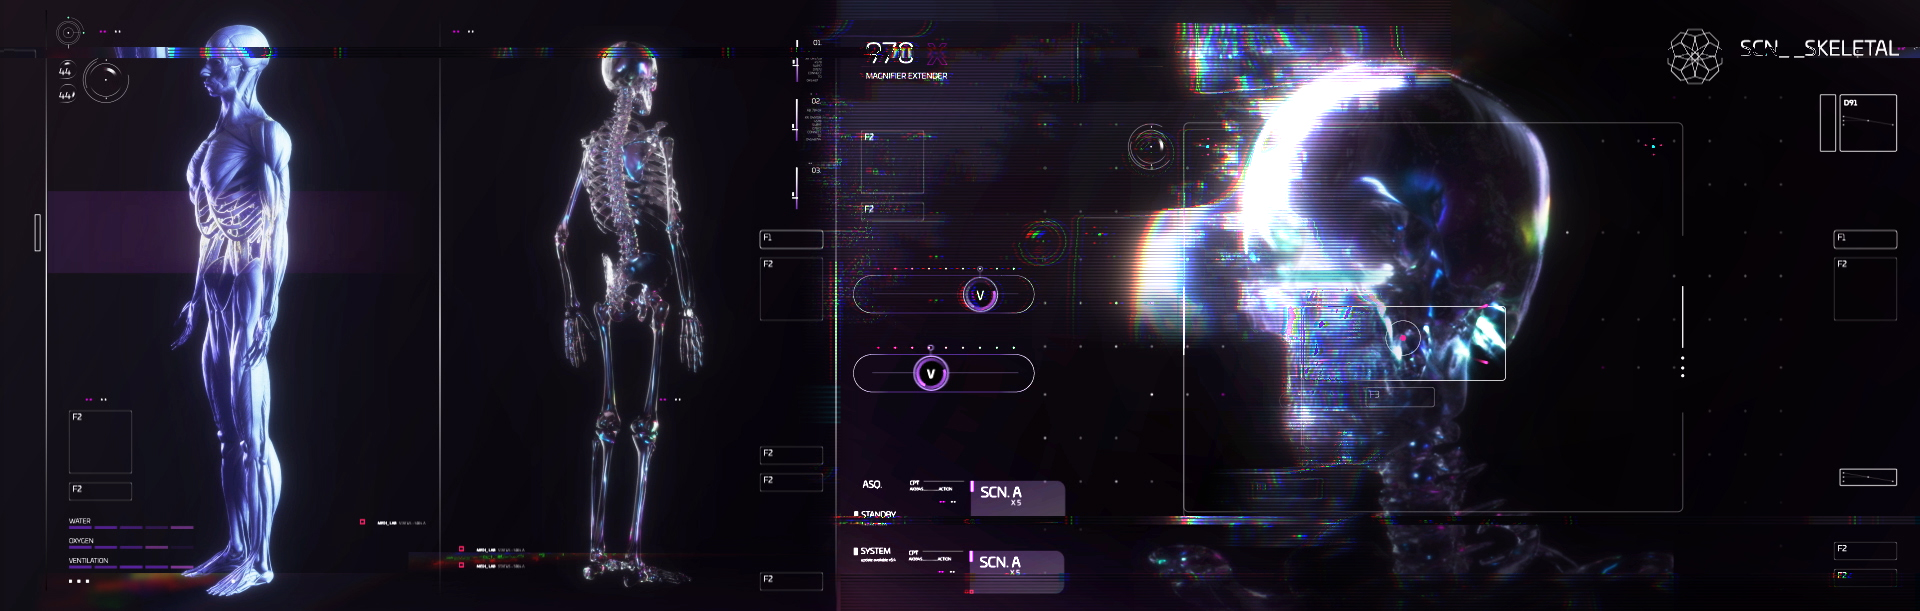 Screen designs for the Nightflyer